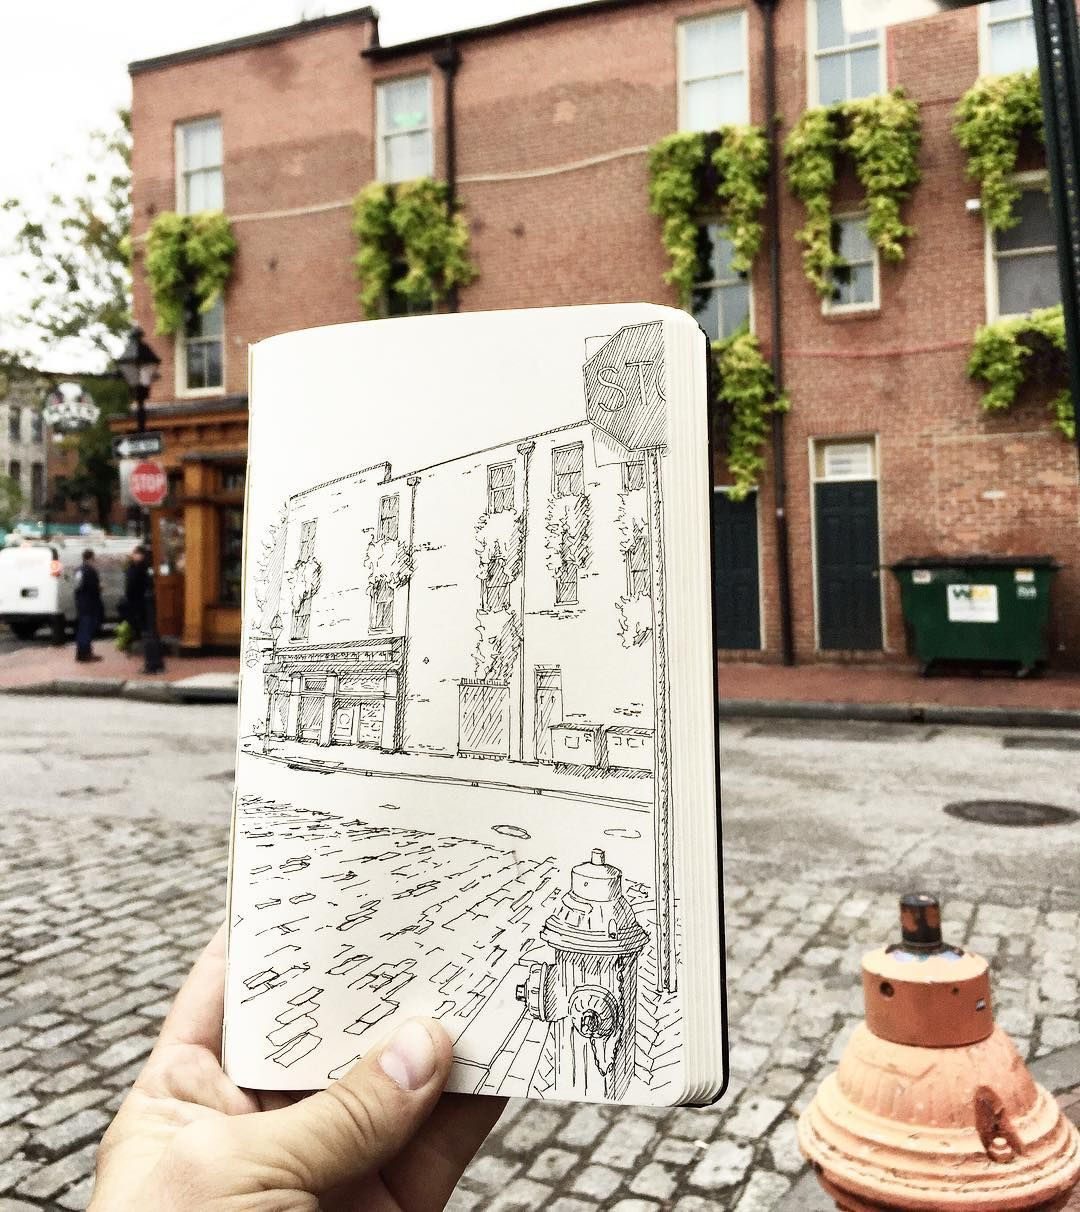 Like the calm before the storm that is the #fellspointfestival, @maxstaphouse. #fellspoint #baltimore #urbansketchers